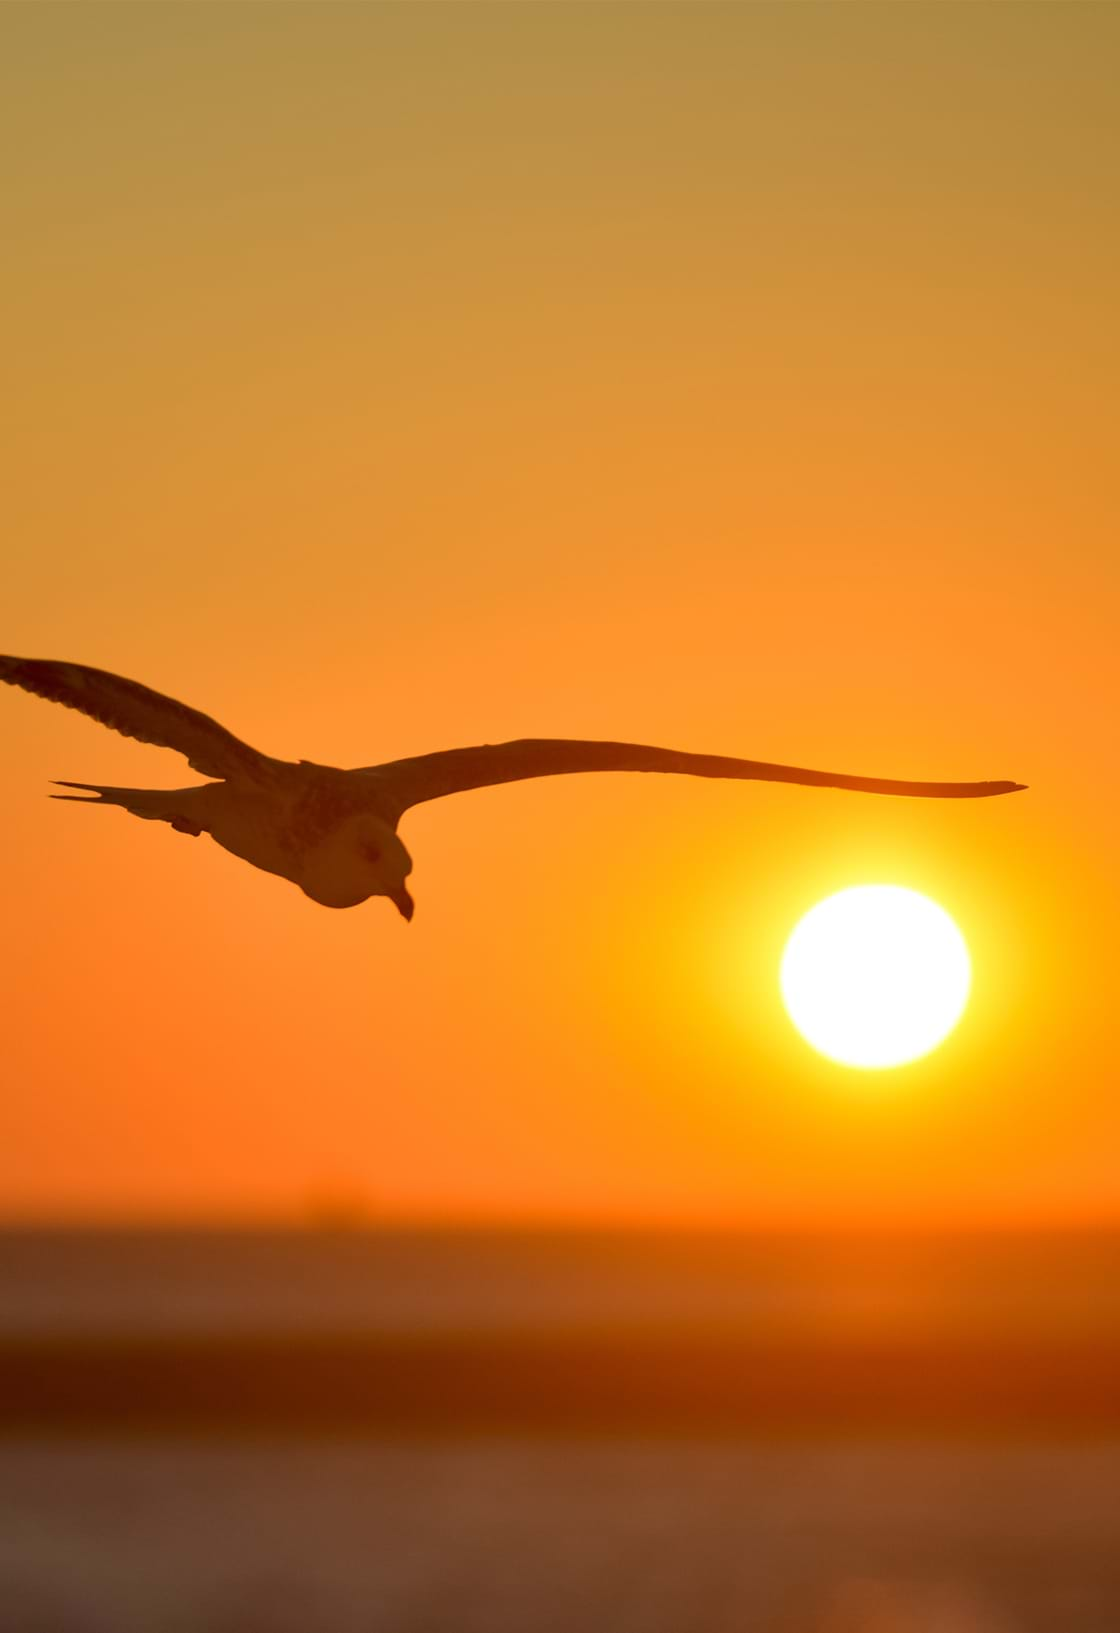 image of a flying bird and sunset